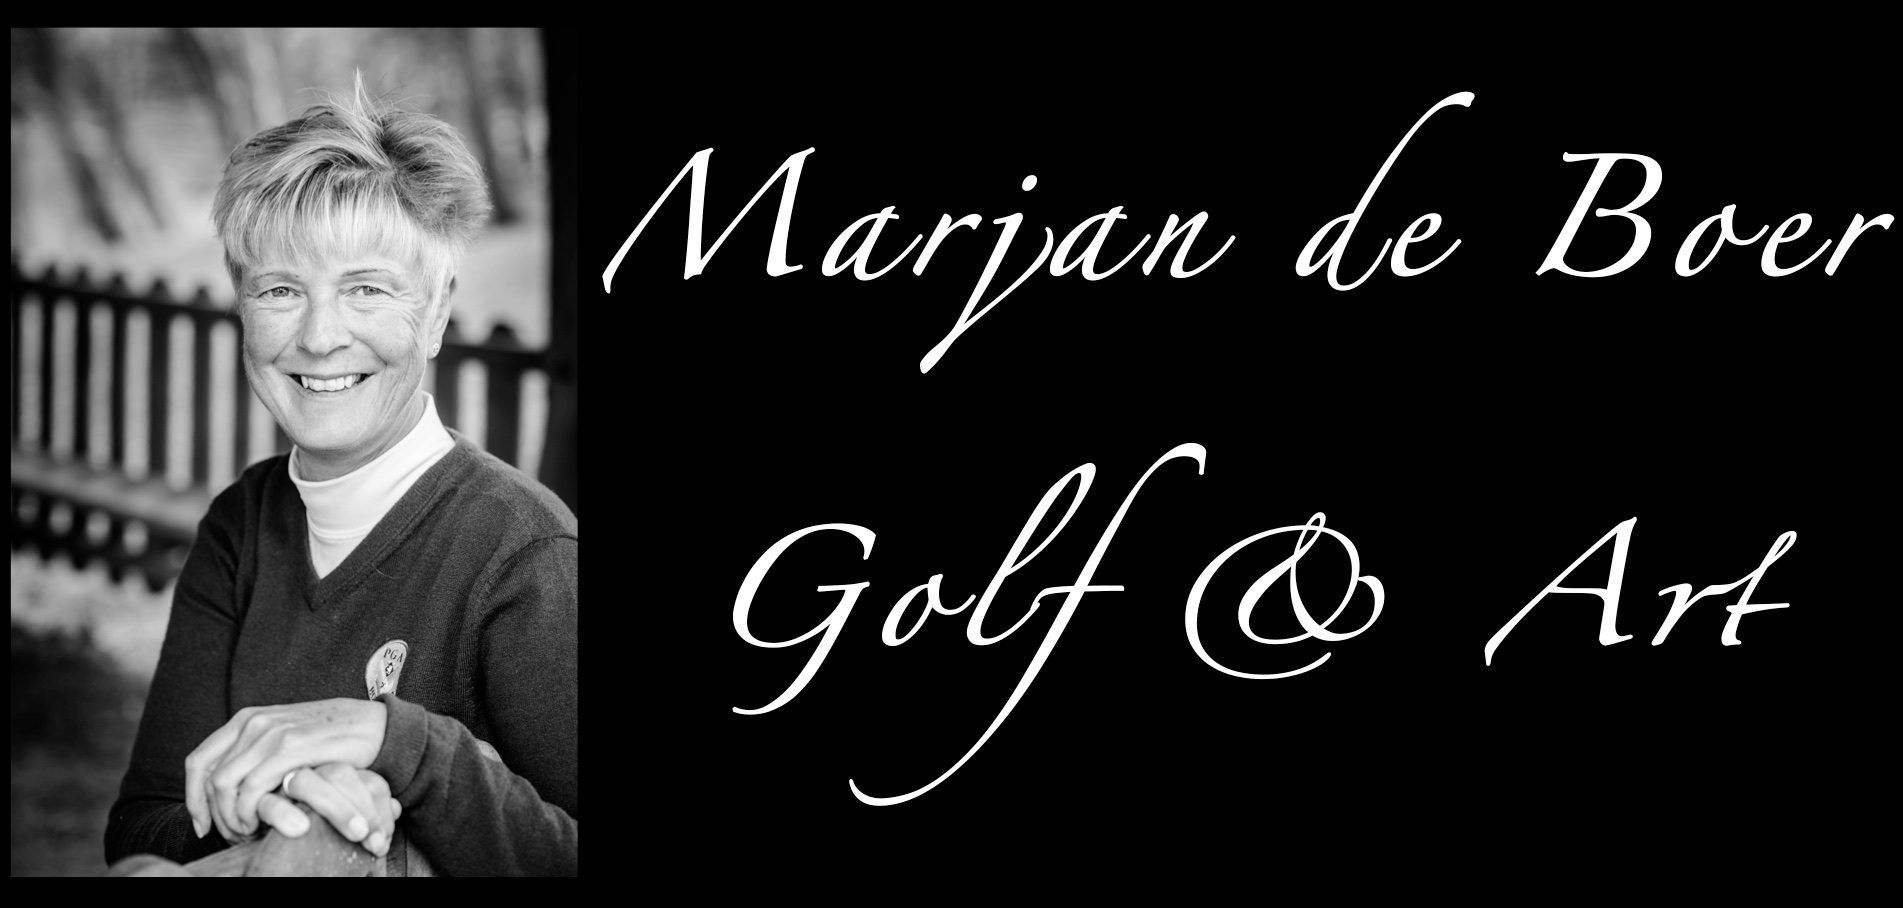 Marjan de Boer Golf & Art